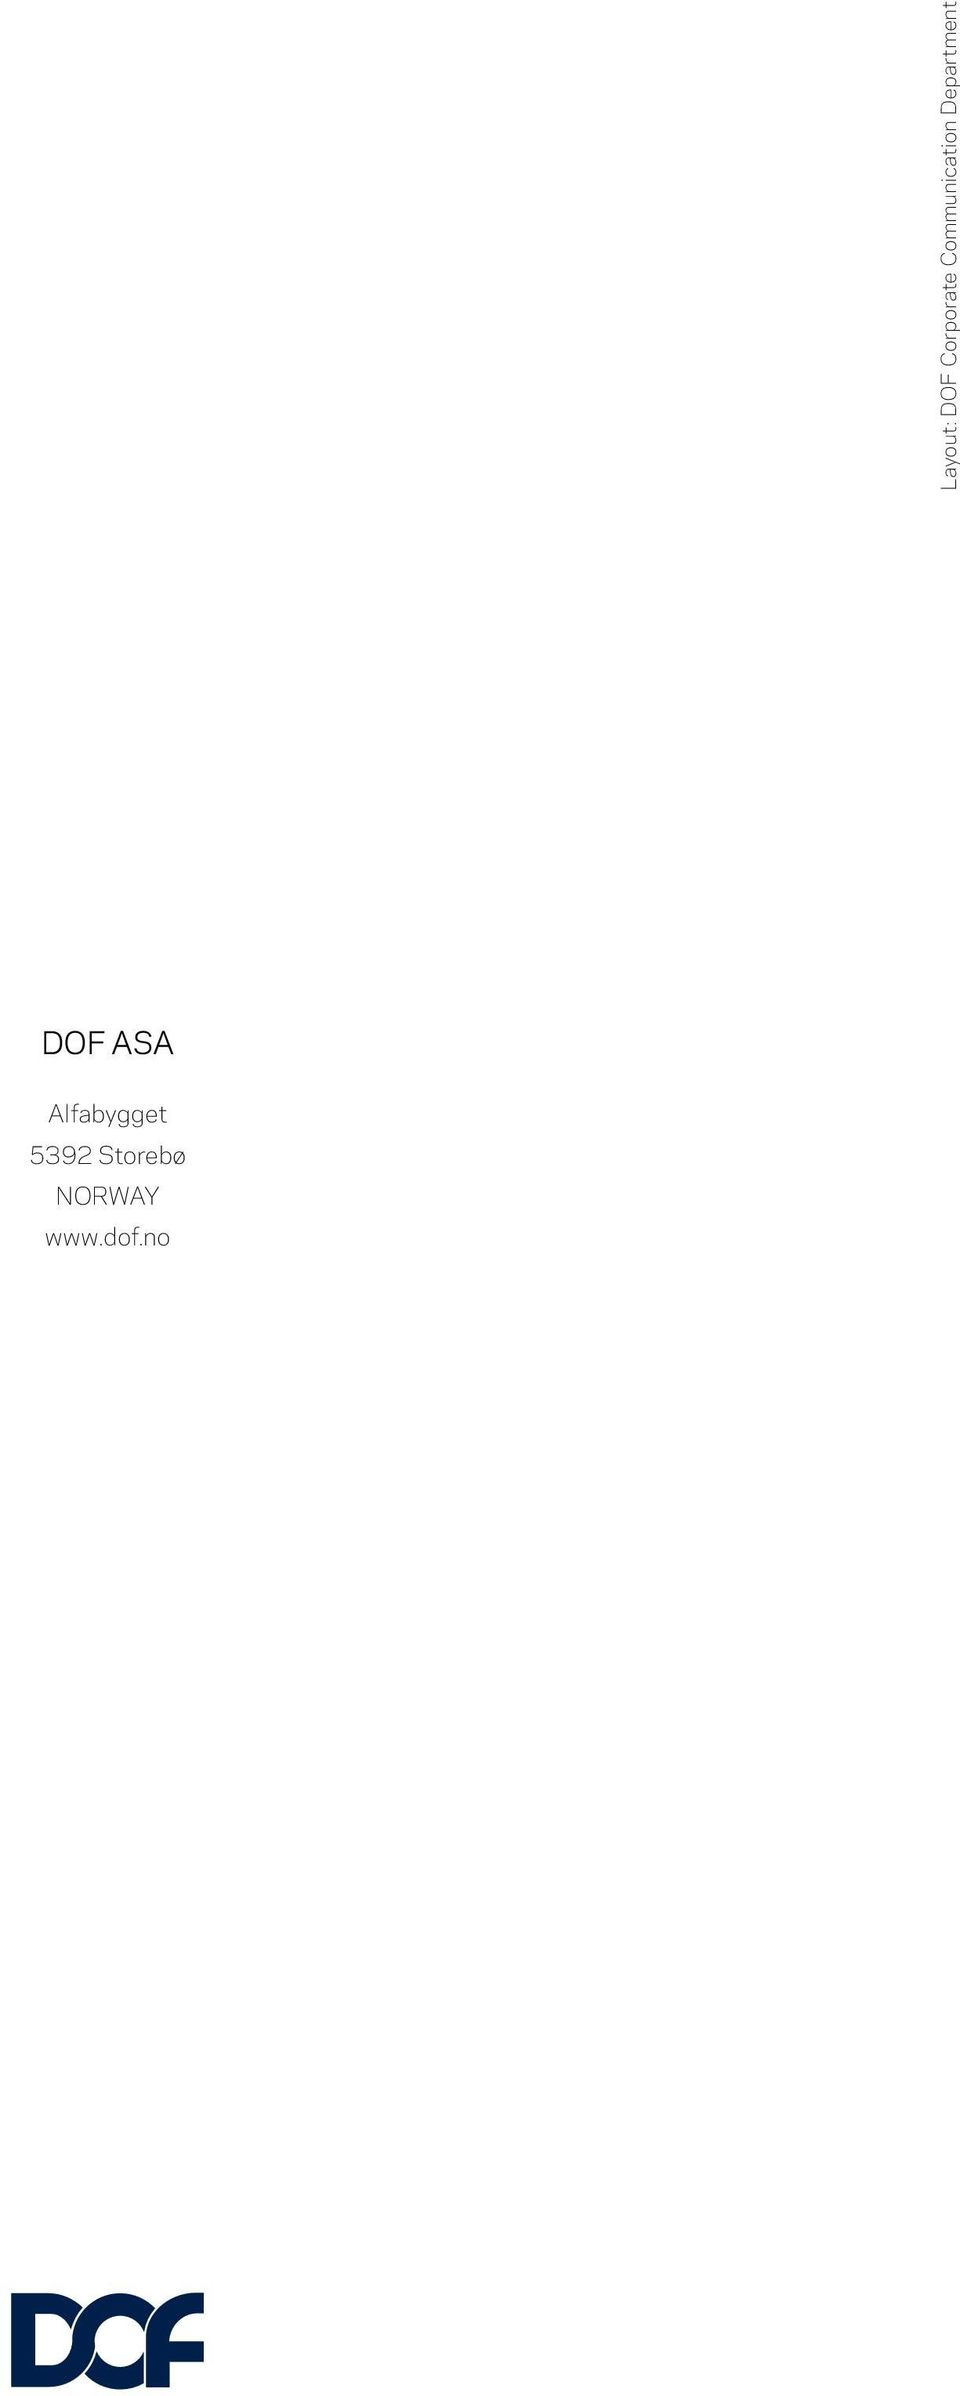 Department DOF ASA